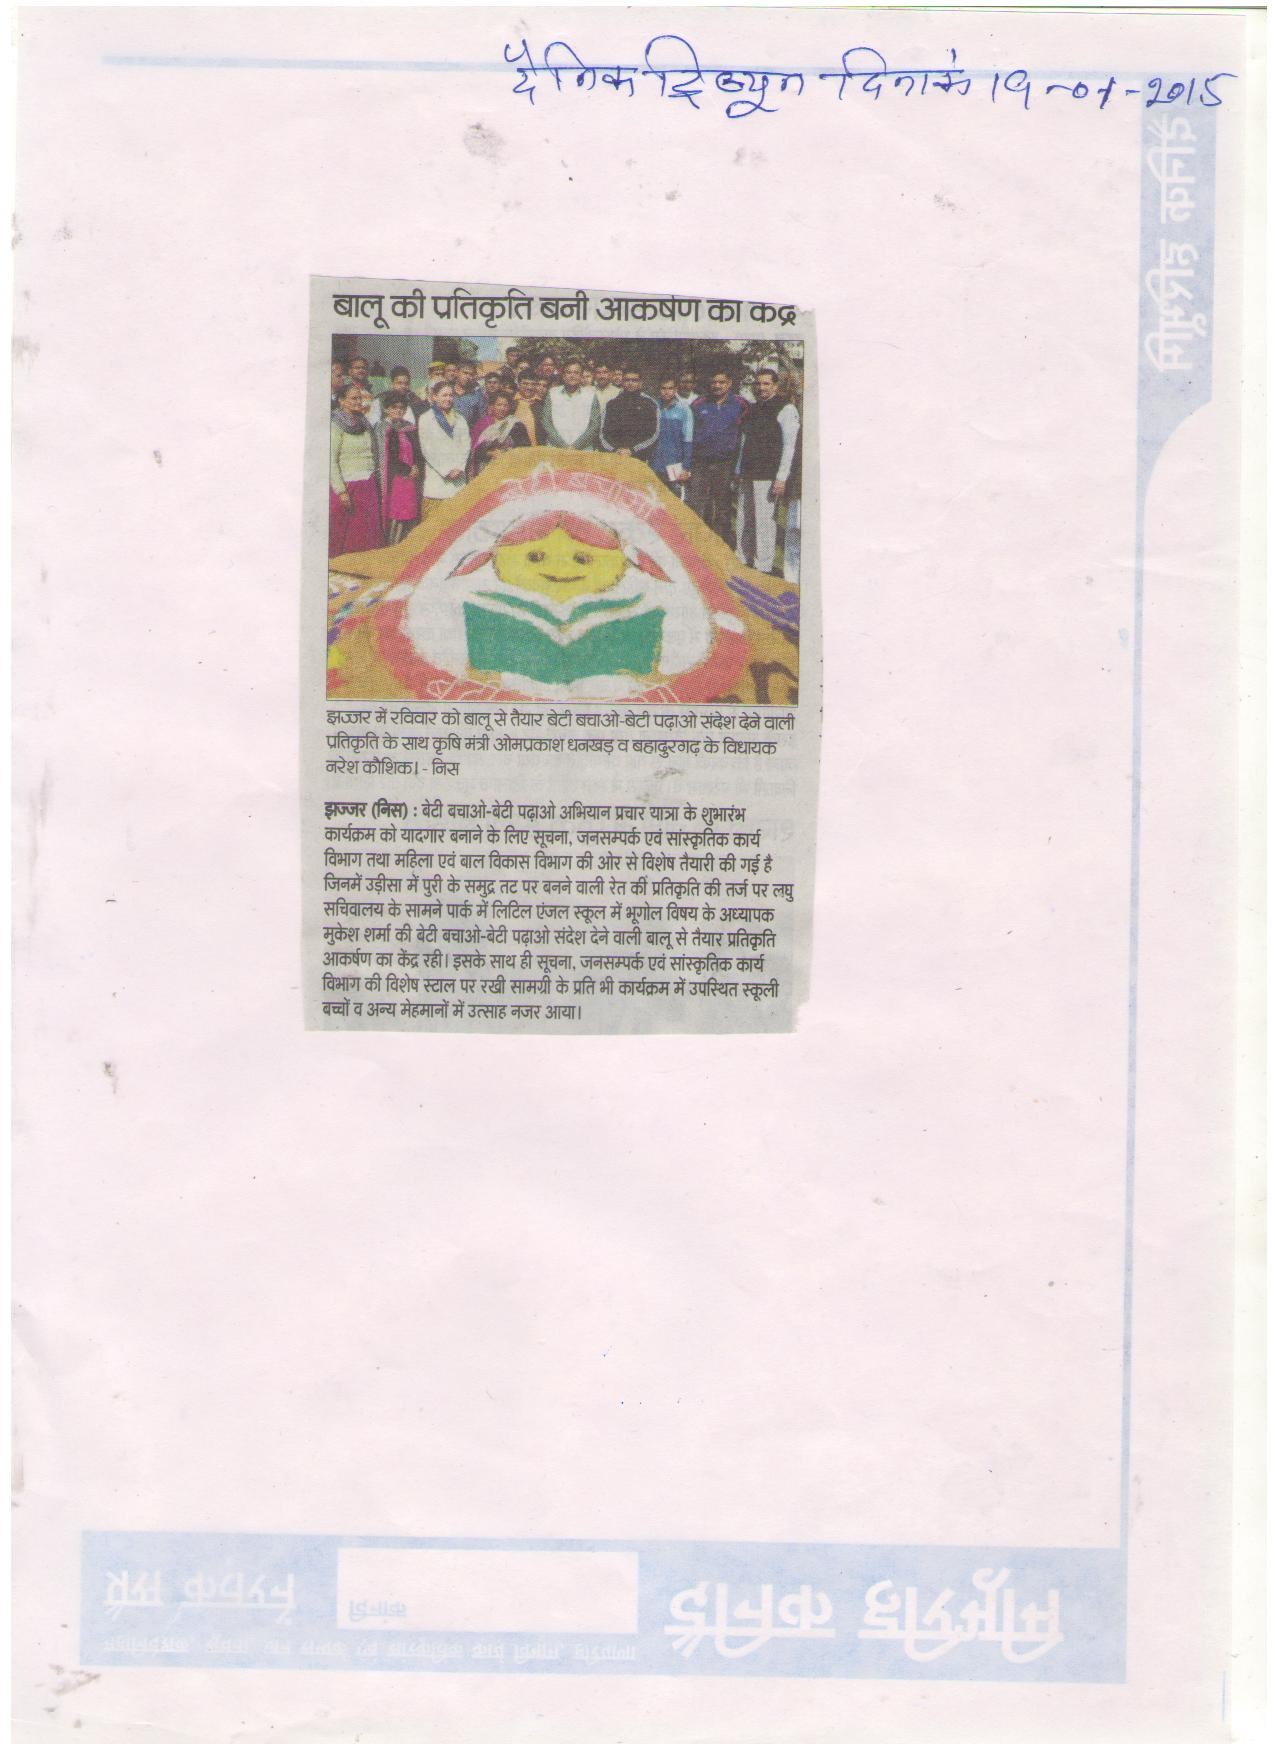 News Clipping regarding Beti Bachao-Beti Padhao - Photo 8